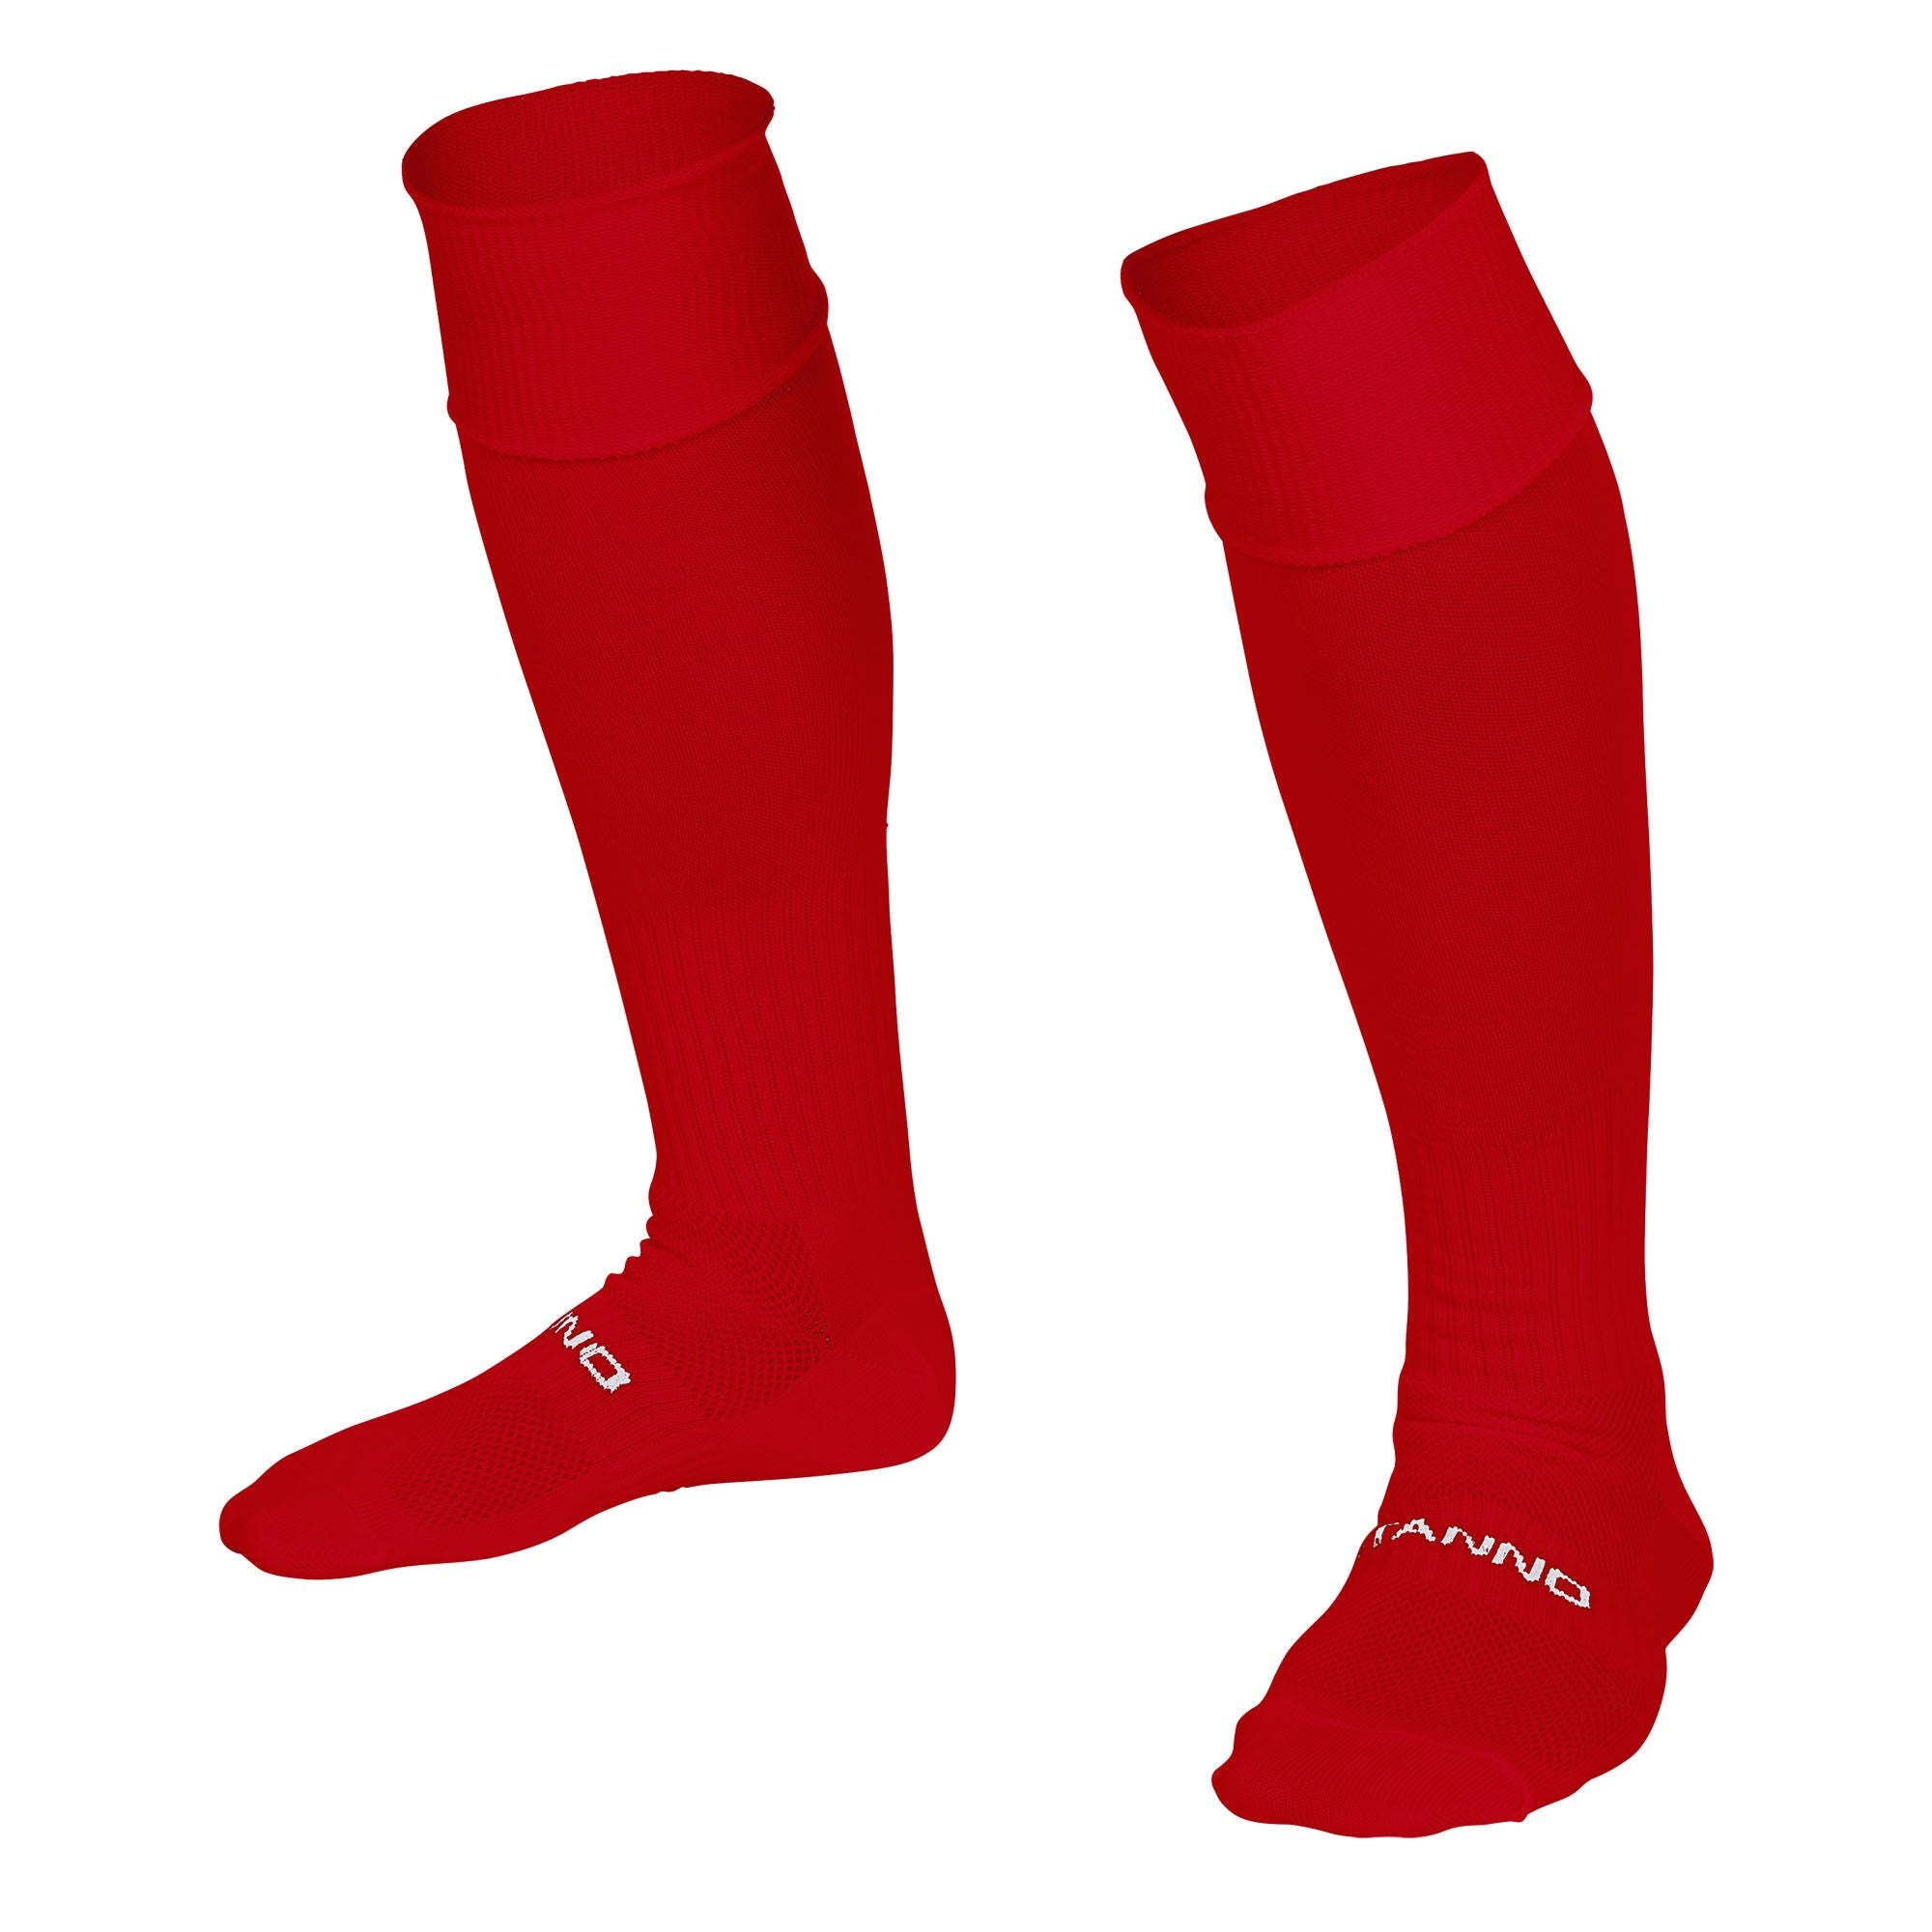 Stanno Park sock in red with Stanno text across the top of the foot.